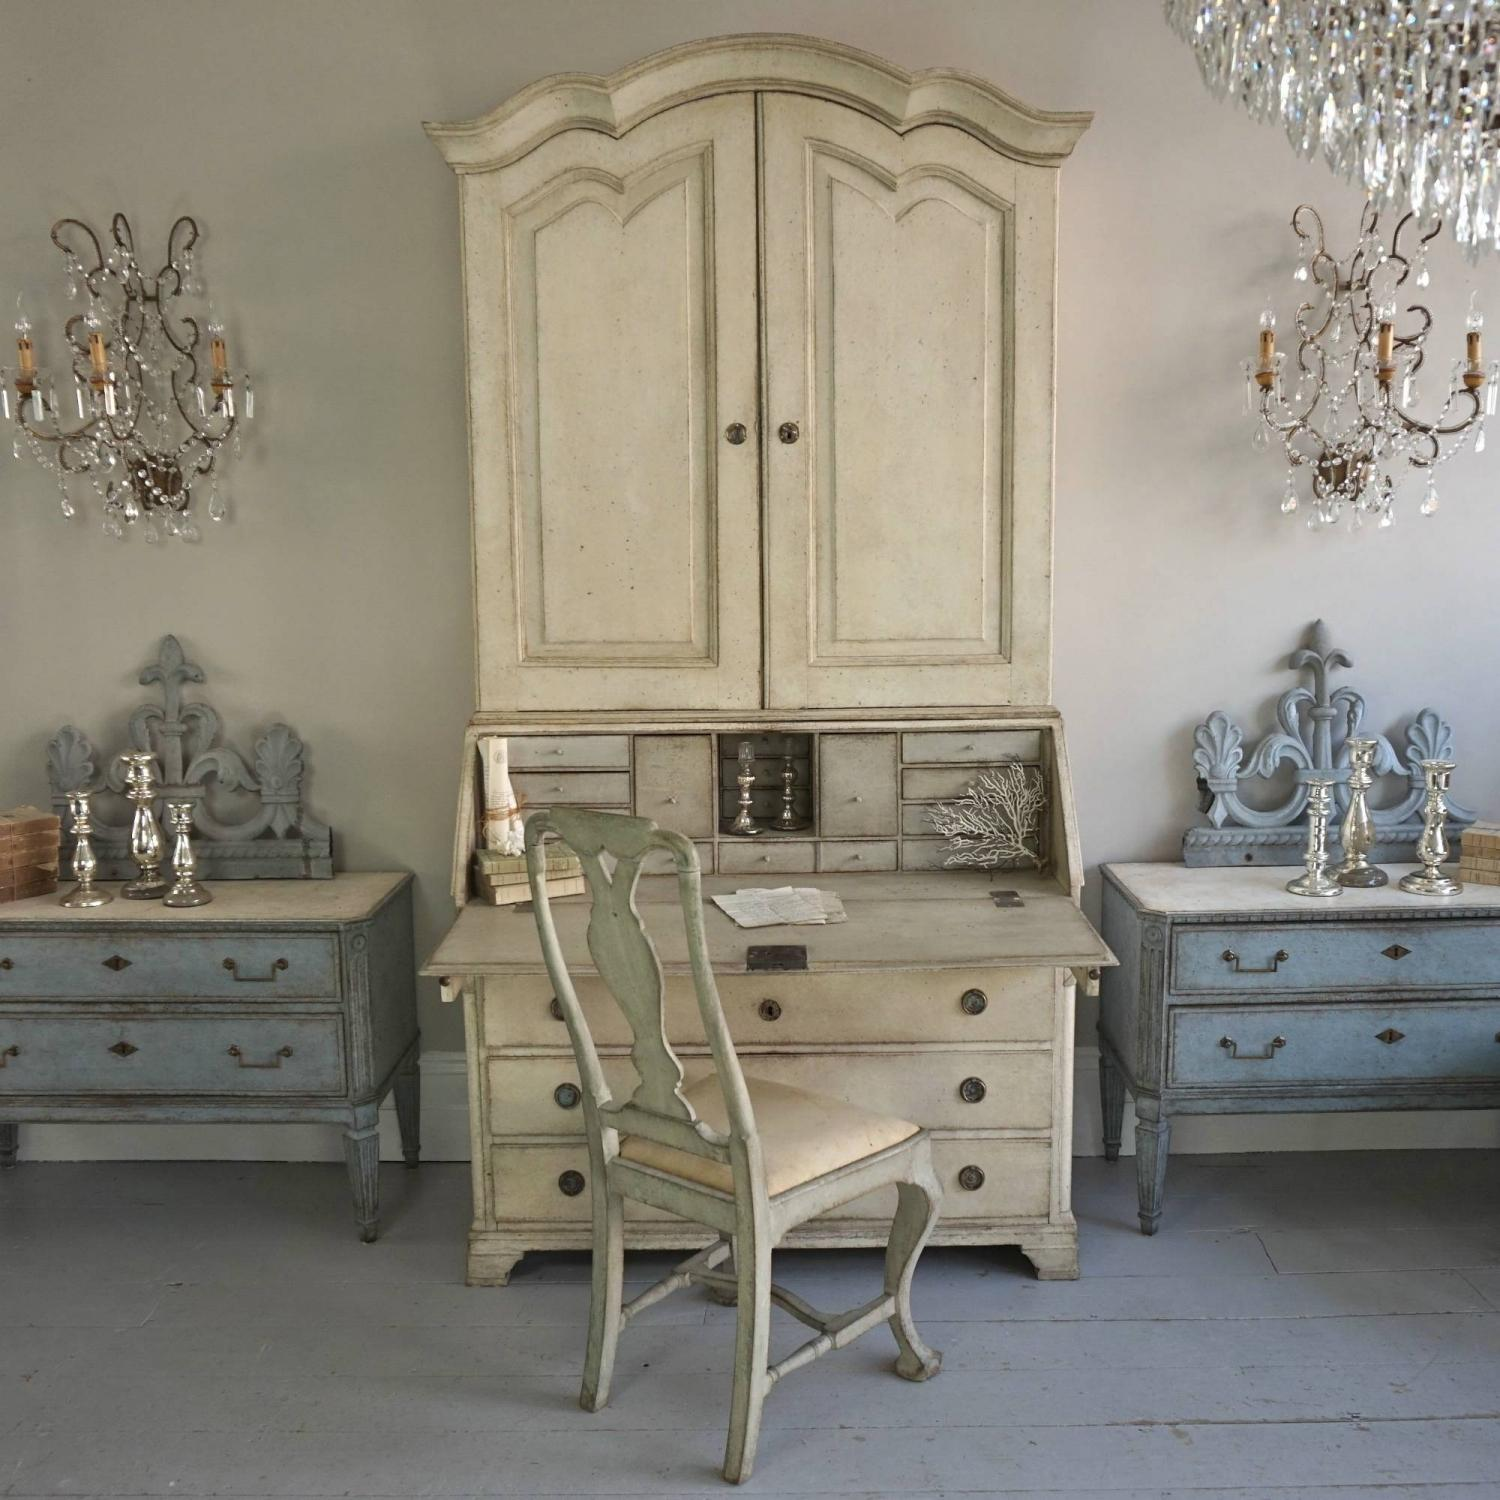 GRAND SCALE DANISH GUSTAVIAN SECRETAIRE